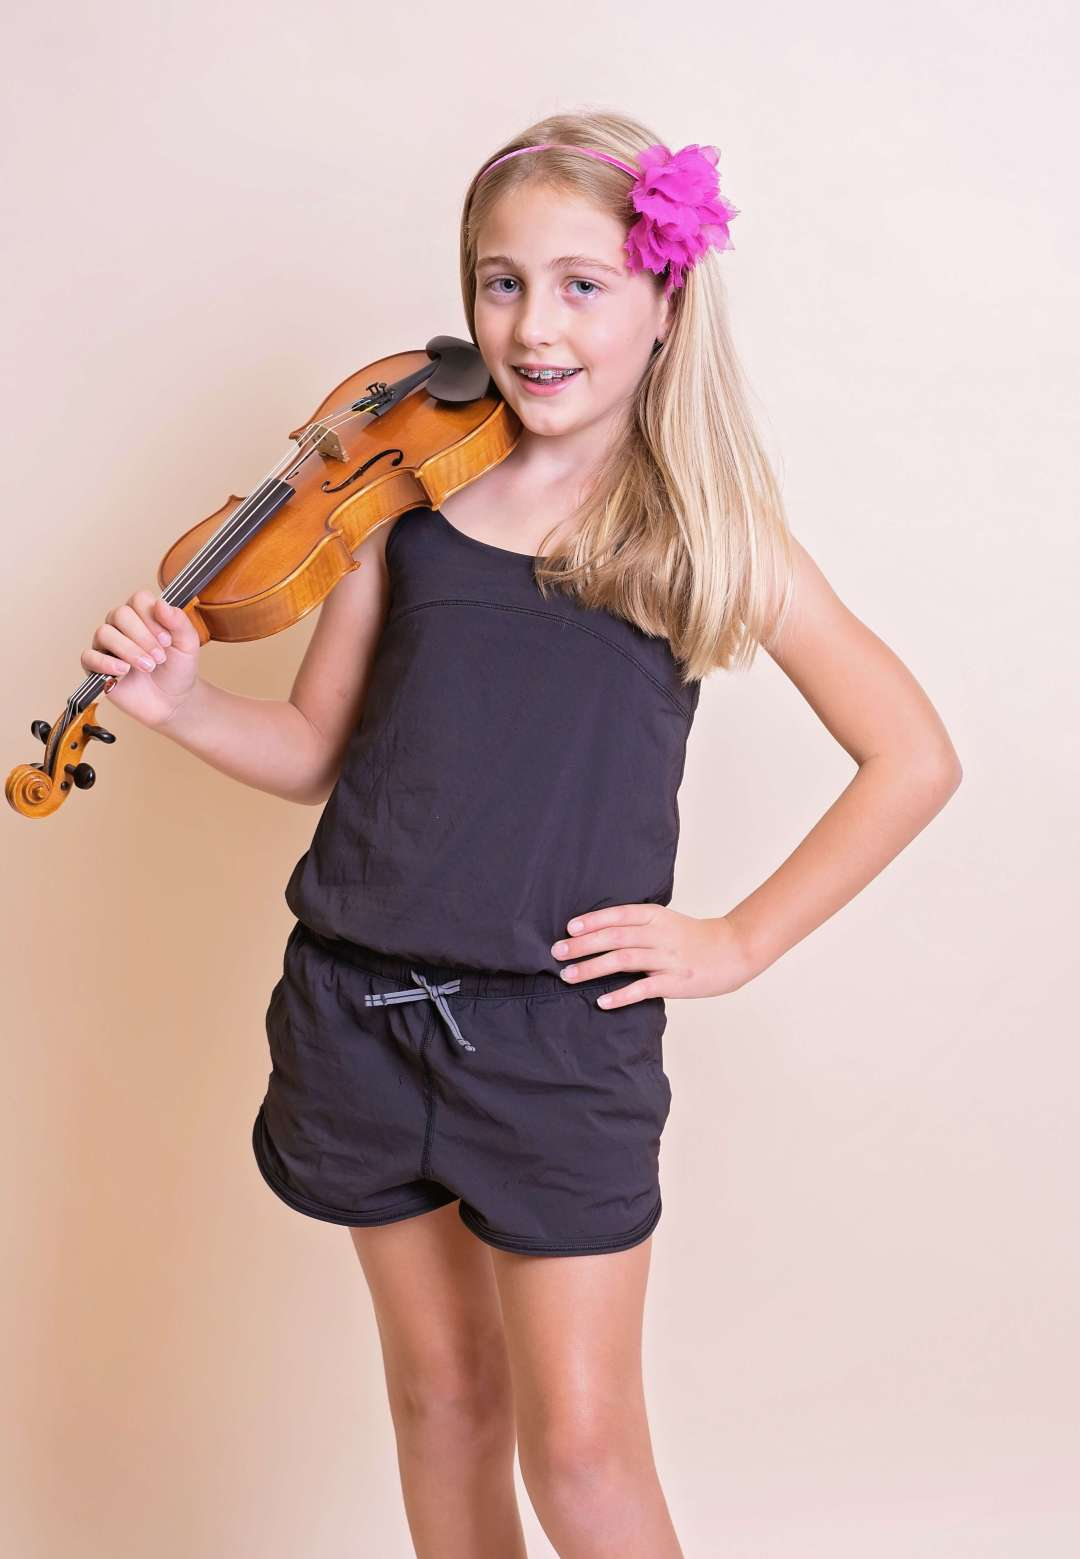 Study violin at The Conservatory of Music at North Katy